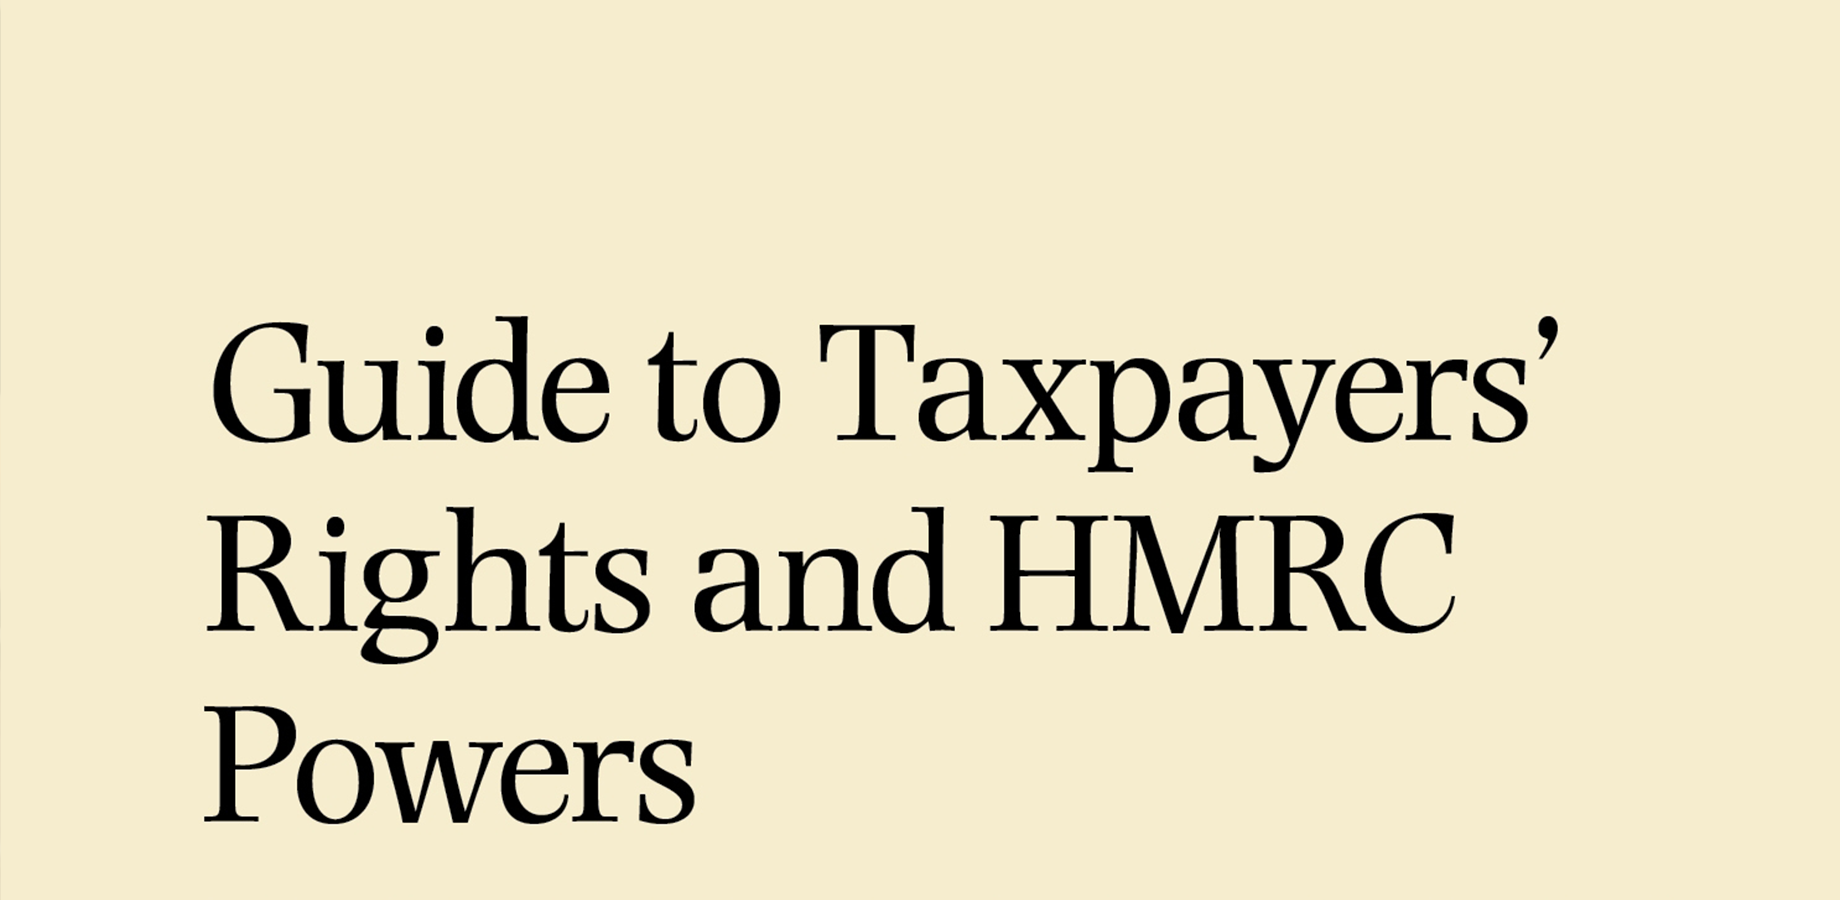 CBW's Robert Maas authors the Taxpayers' Rights book, published by Bloomsbury Professional